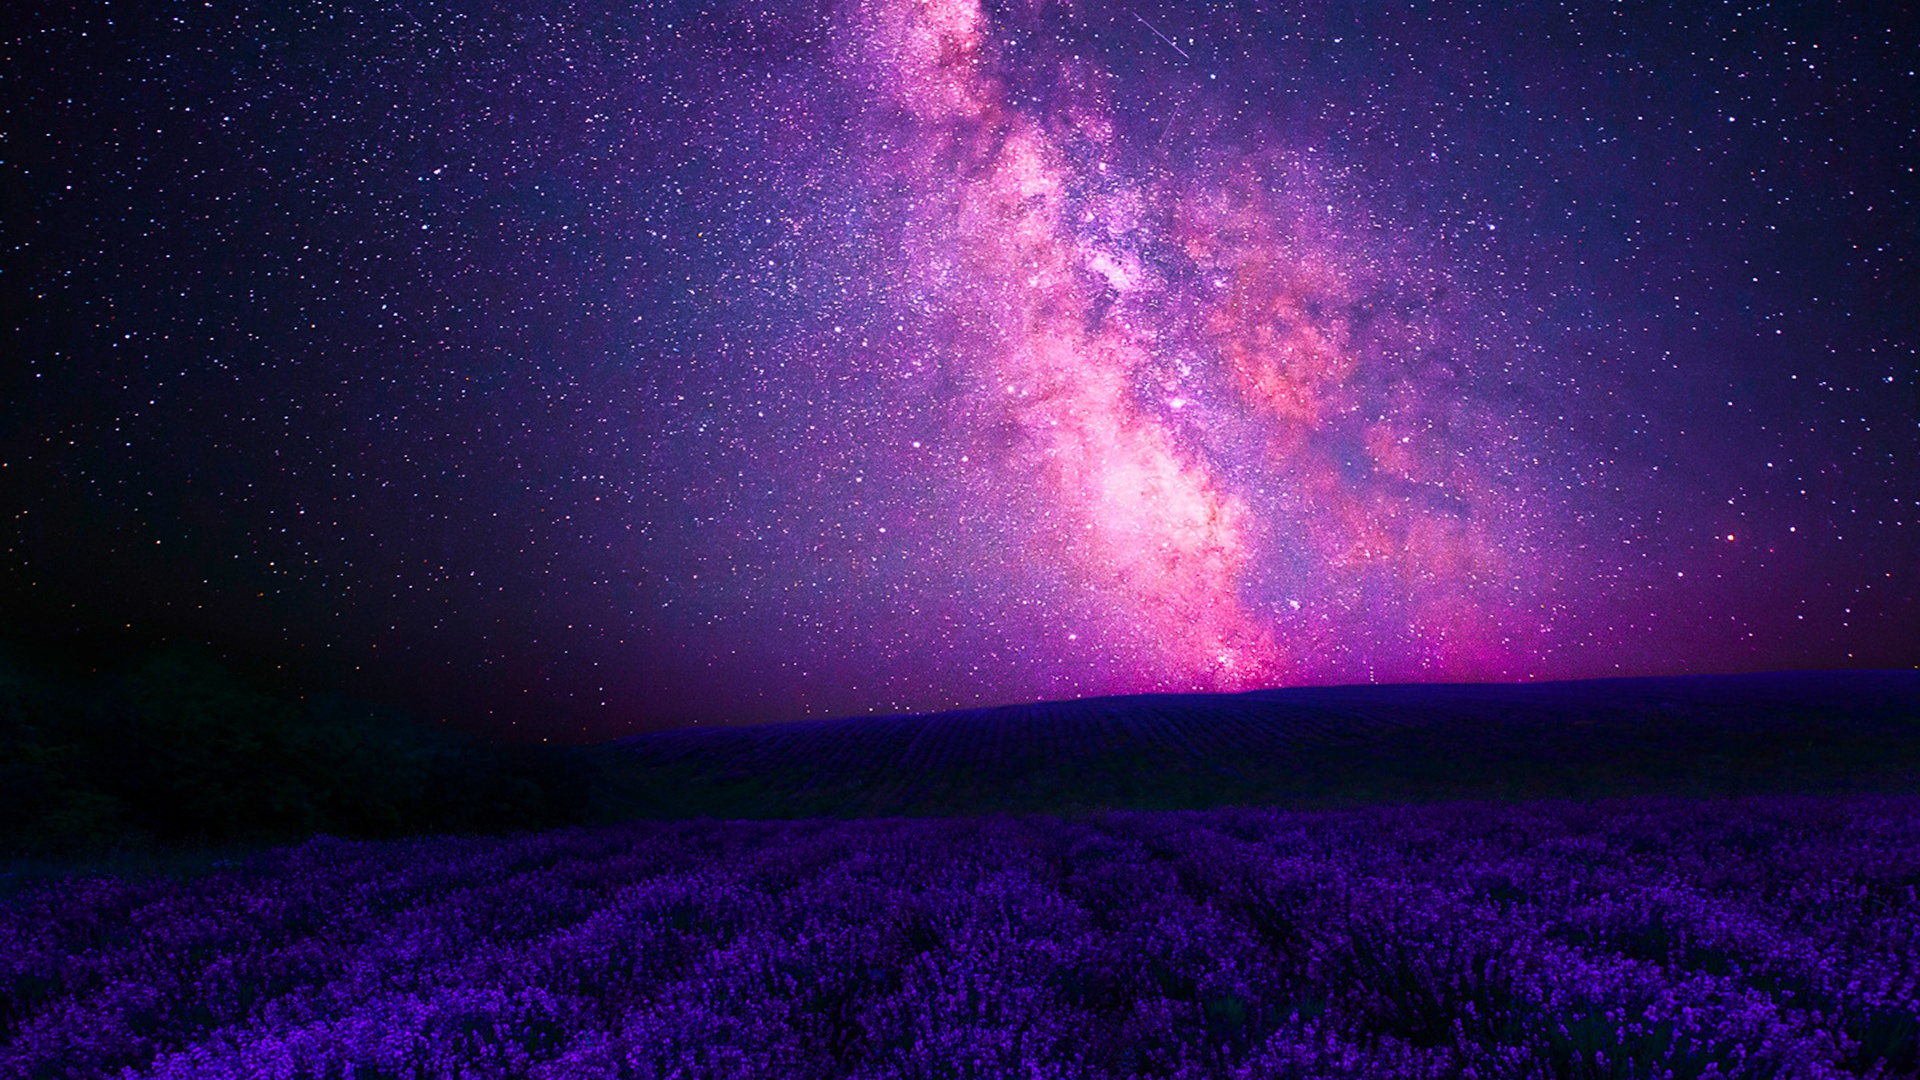 1920x1080 Pink Galaxy Purple Lavender Desktop Pc And Mac